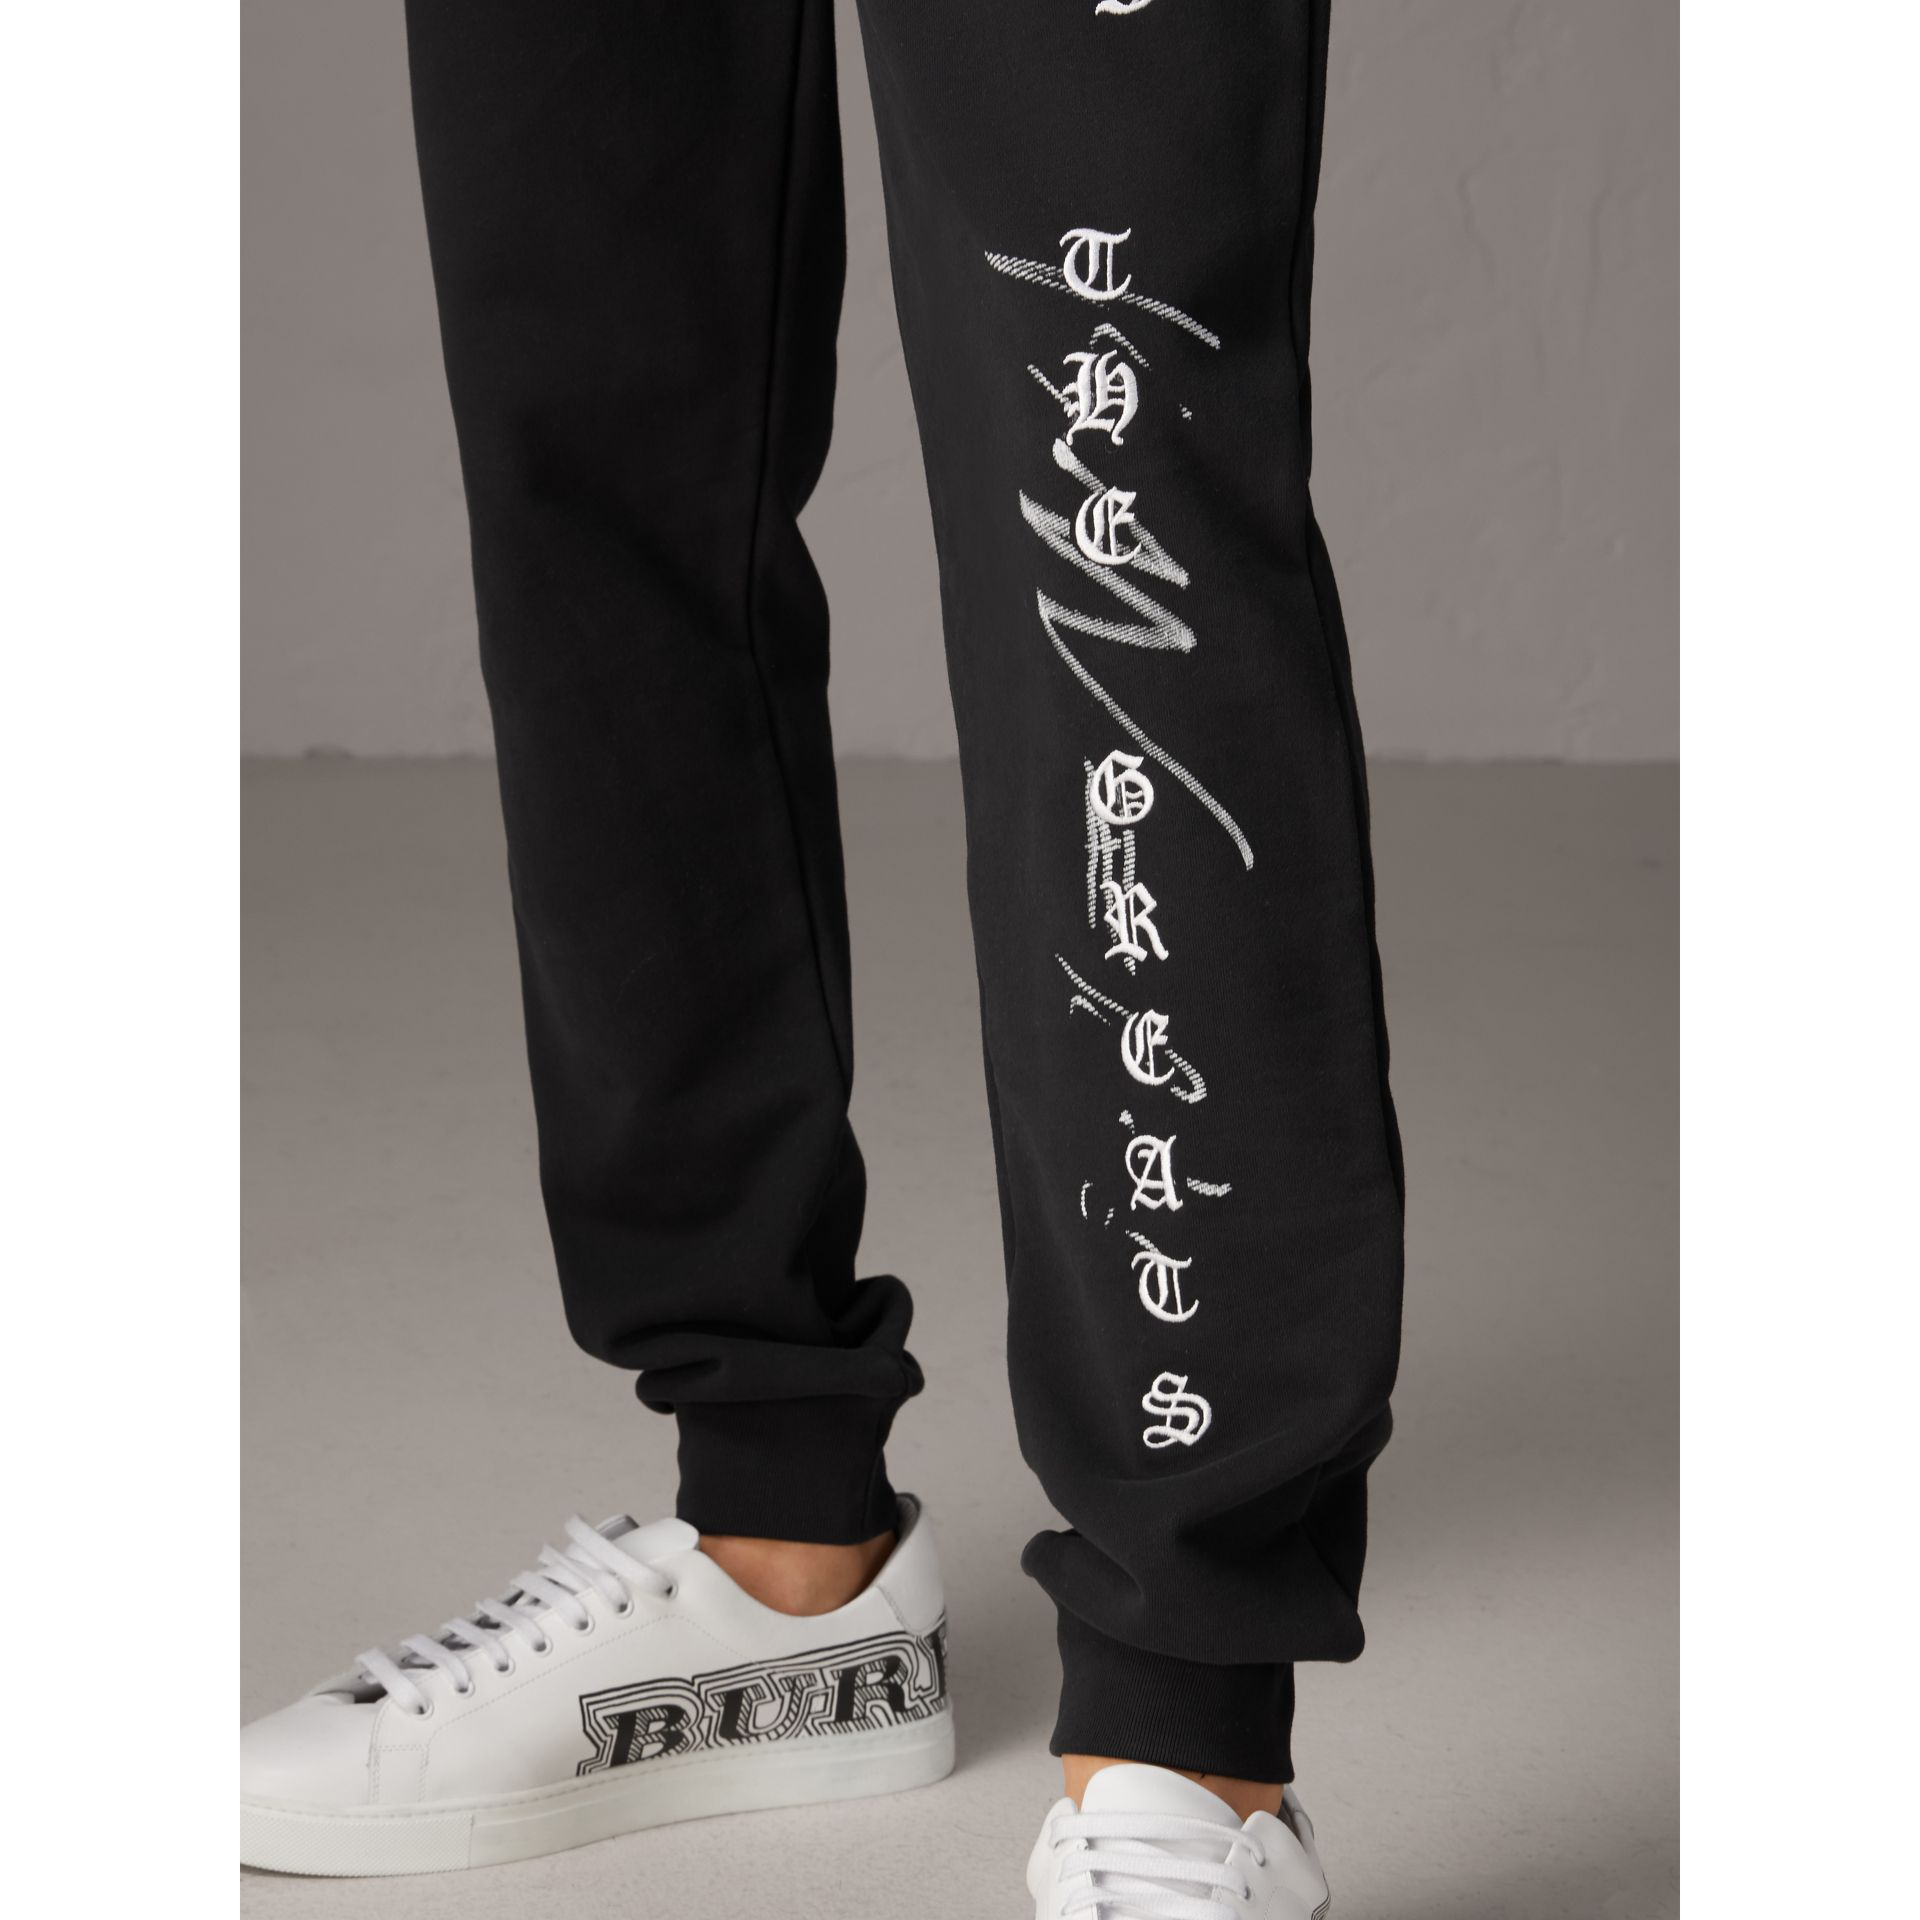 Burberry x Kris Wu Graphic Motif Sweatpants in Black - Men | Burberry - gallery image 1